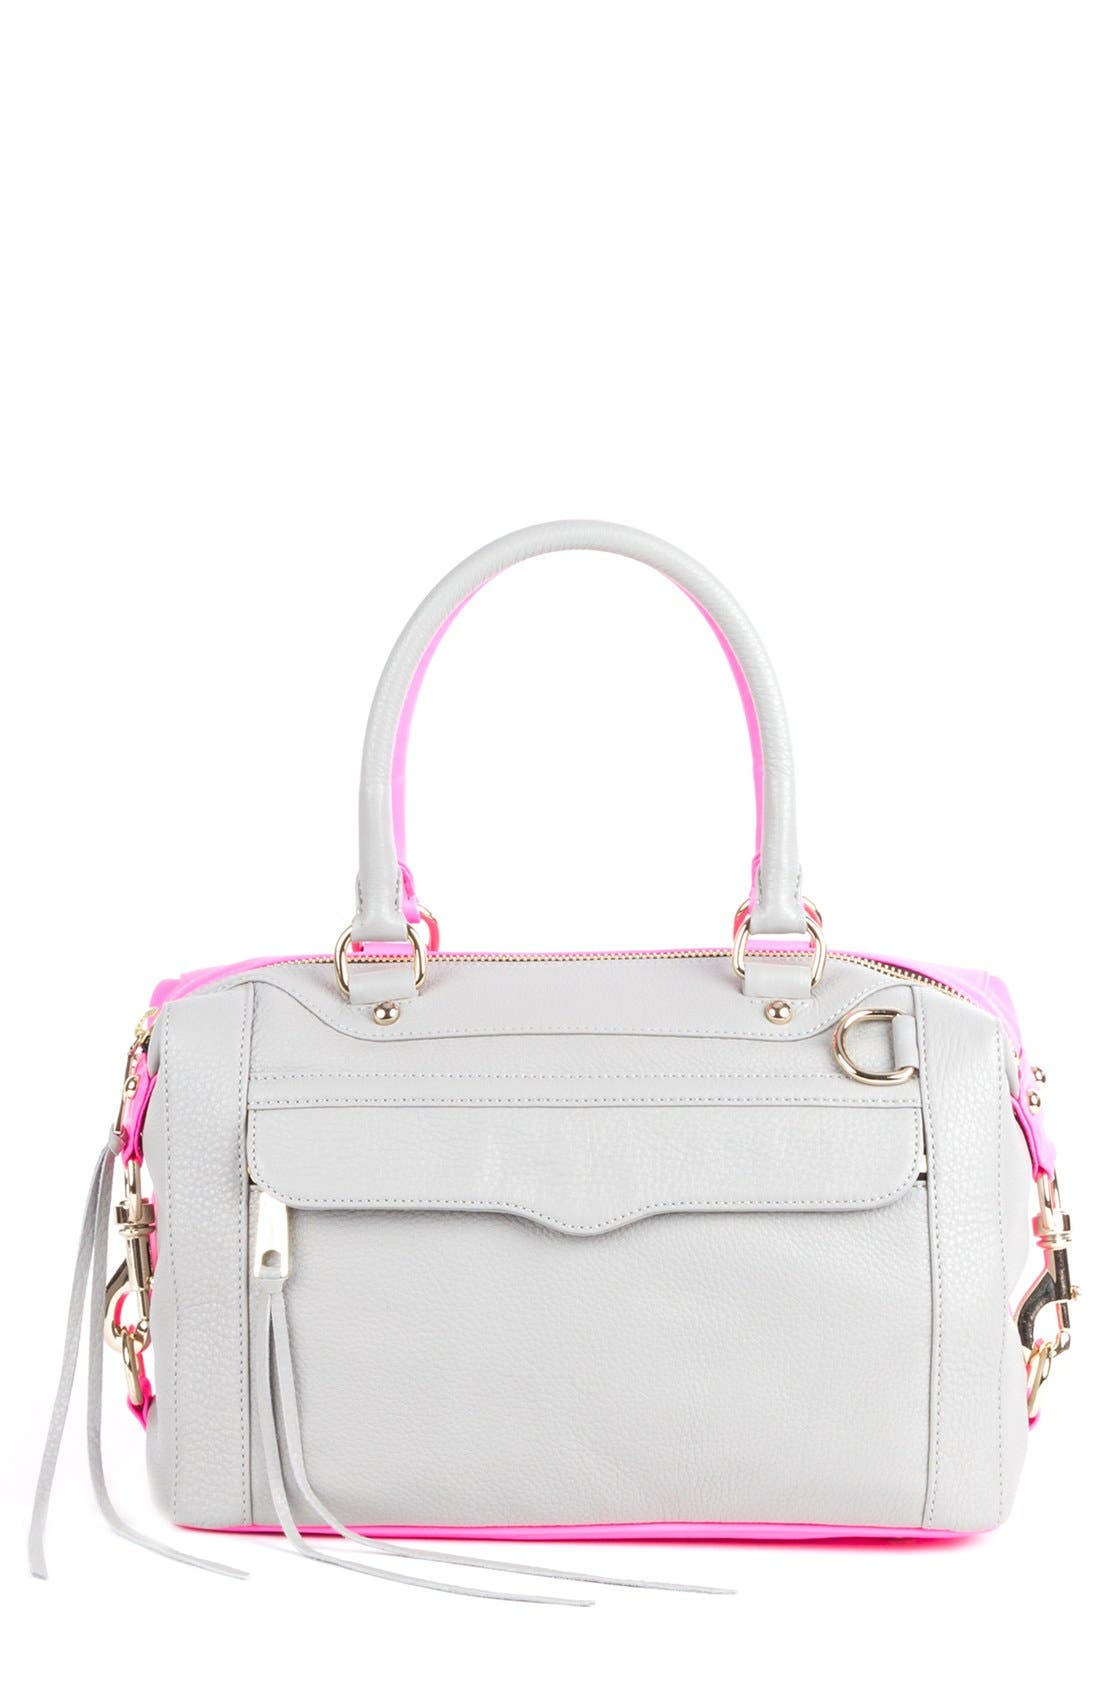 Alternate Image 1 Selected - Rebecca Minkoff 'Mini MAB' Satchel